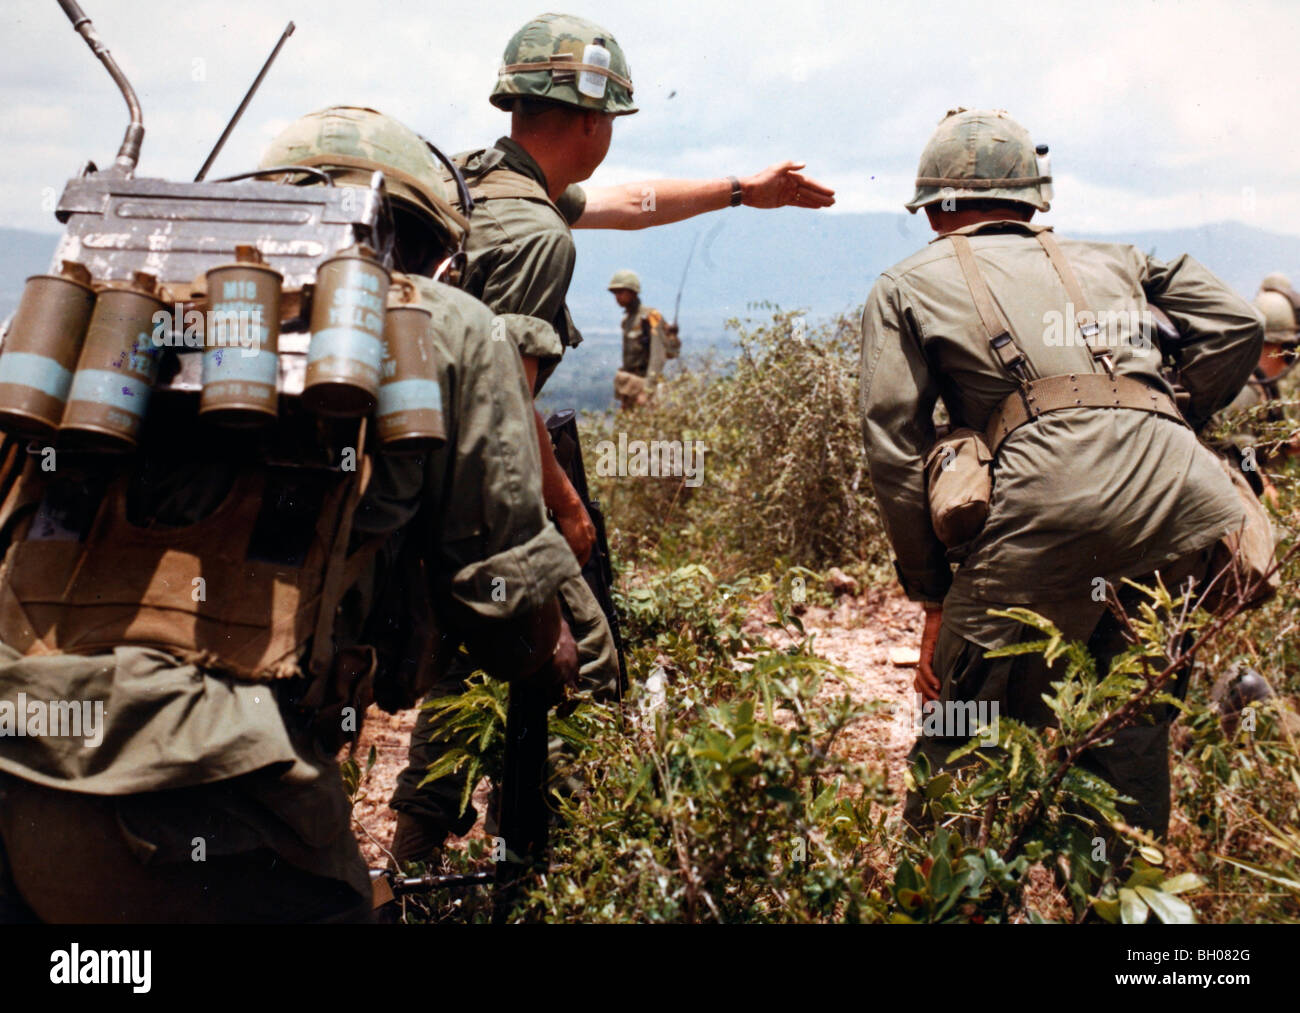 a search and destroy mission conducted by the Bravo Blues infantry Troop B, 1st Squadron, 9th Cavalry, 1st Cavalry Stock Photo